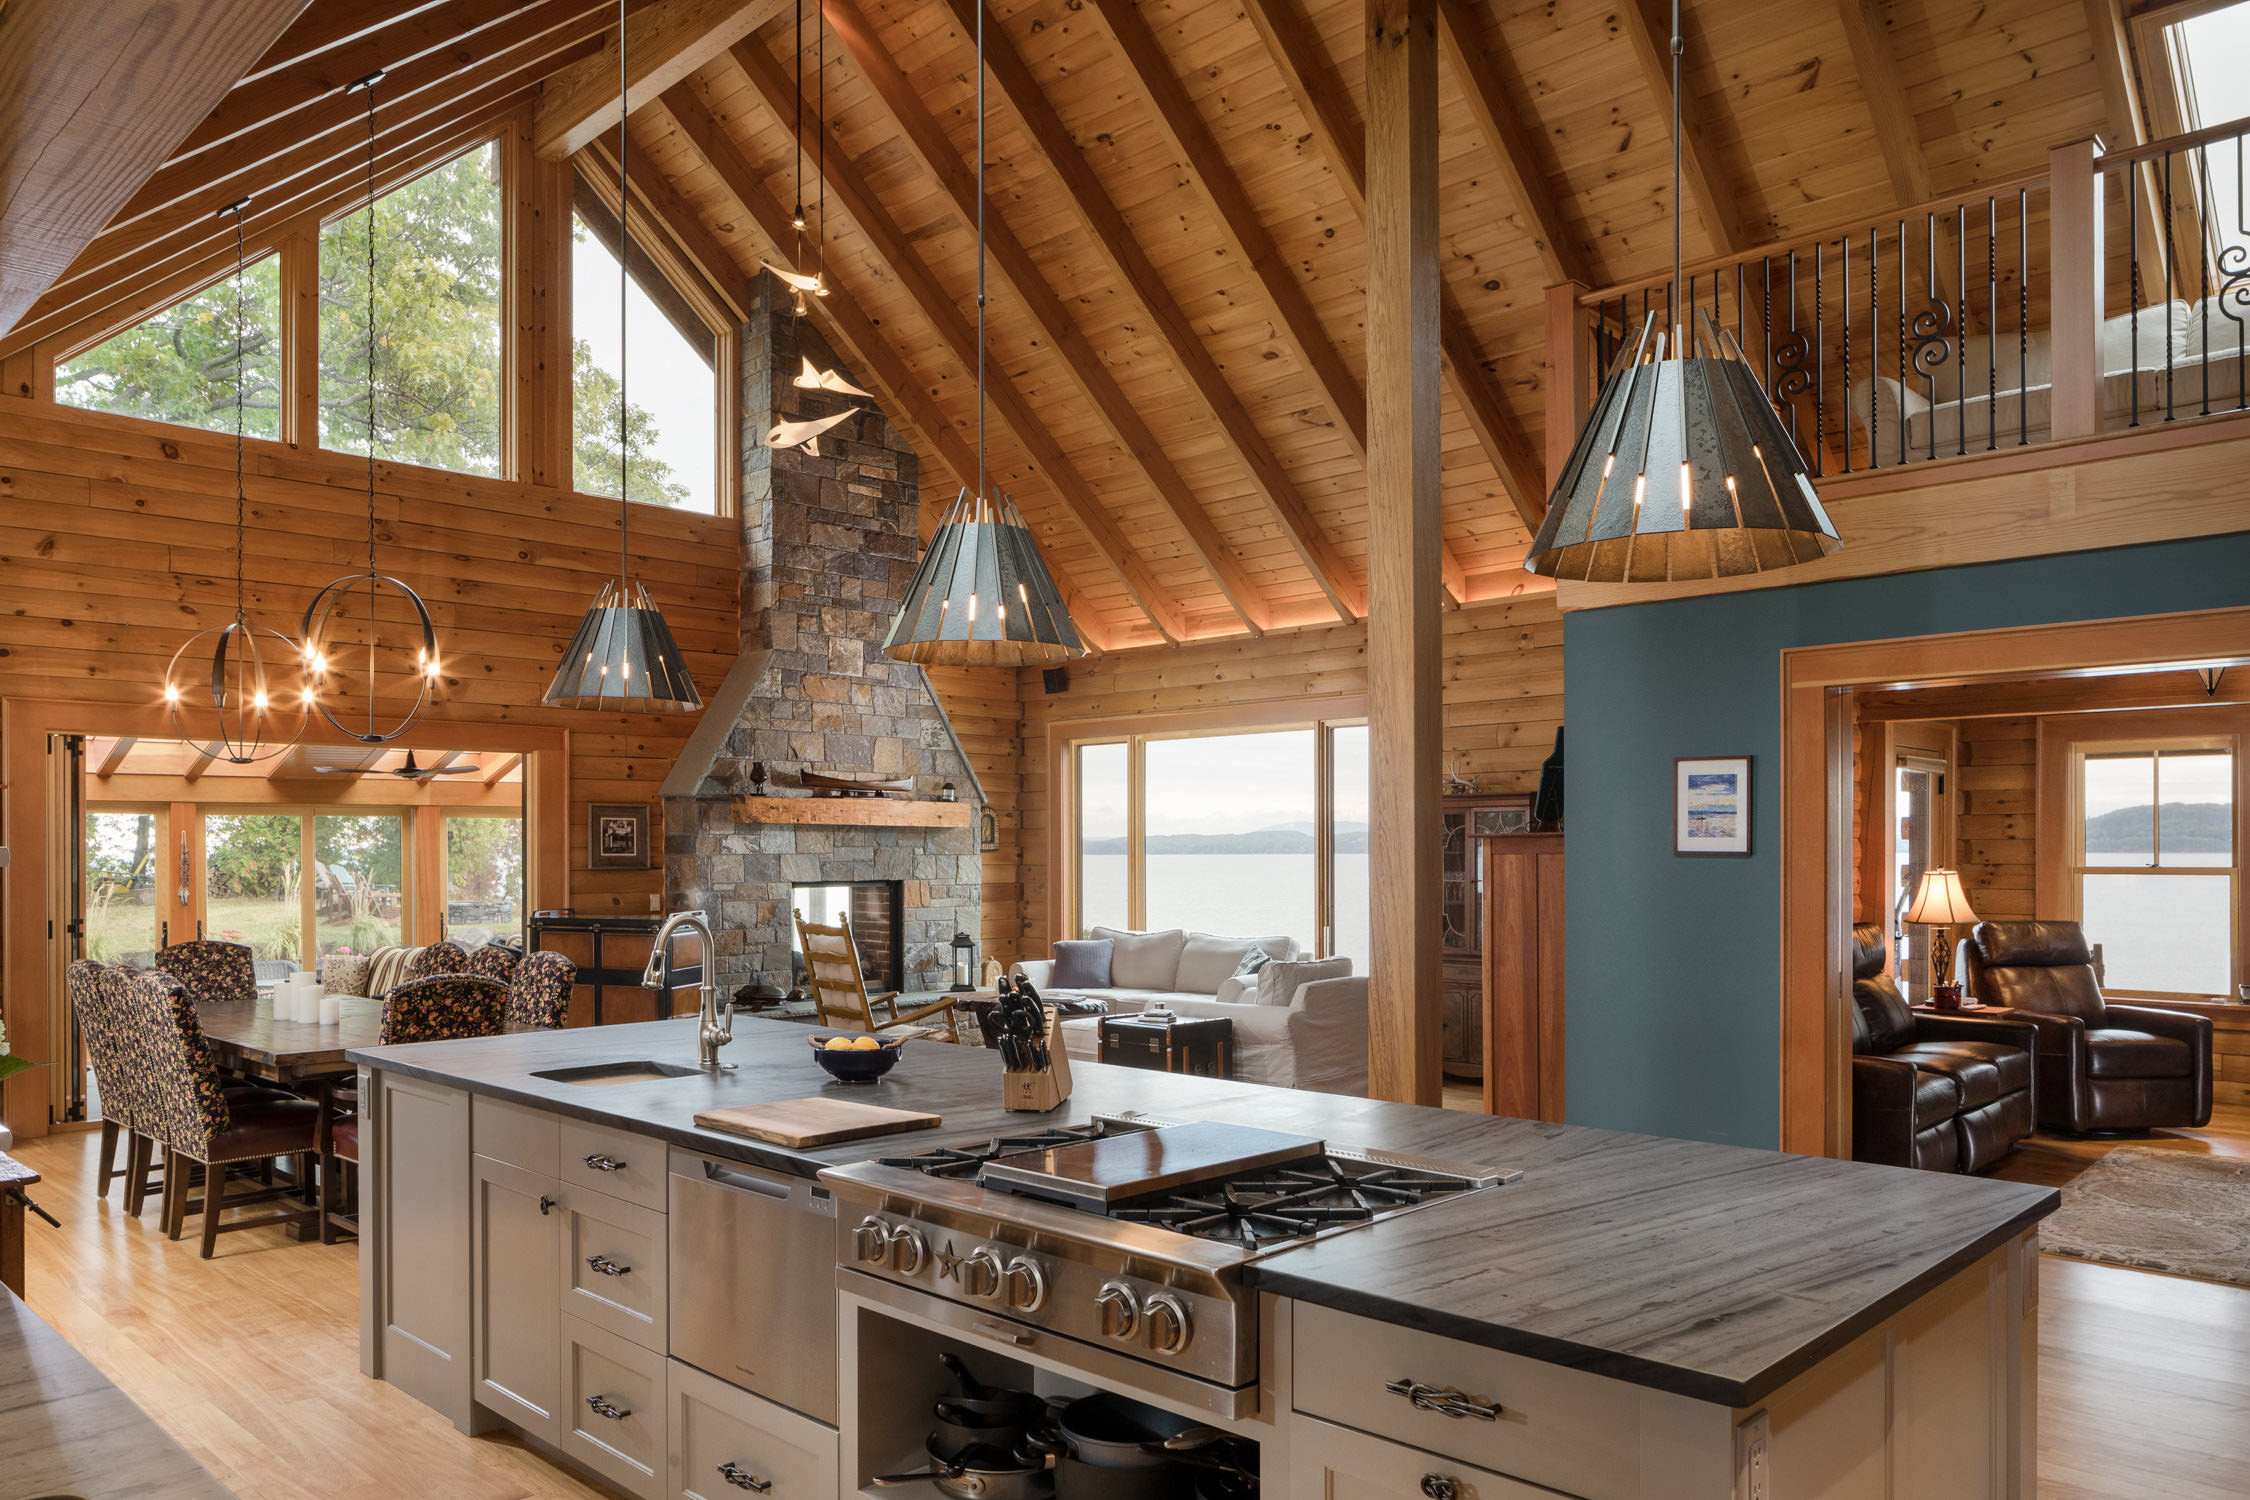 Interior architecture photo of an Adirondack style lake house renovation including an open kitchen and living concept, timber framing and wood paneling throughout designed by Wiemann Lamphere Architects and photographed by Vermont photographer Stina Booth of Studio SB.,